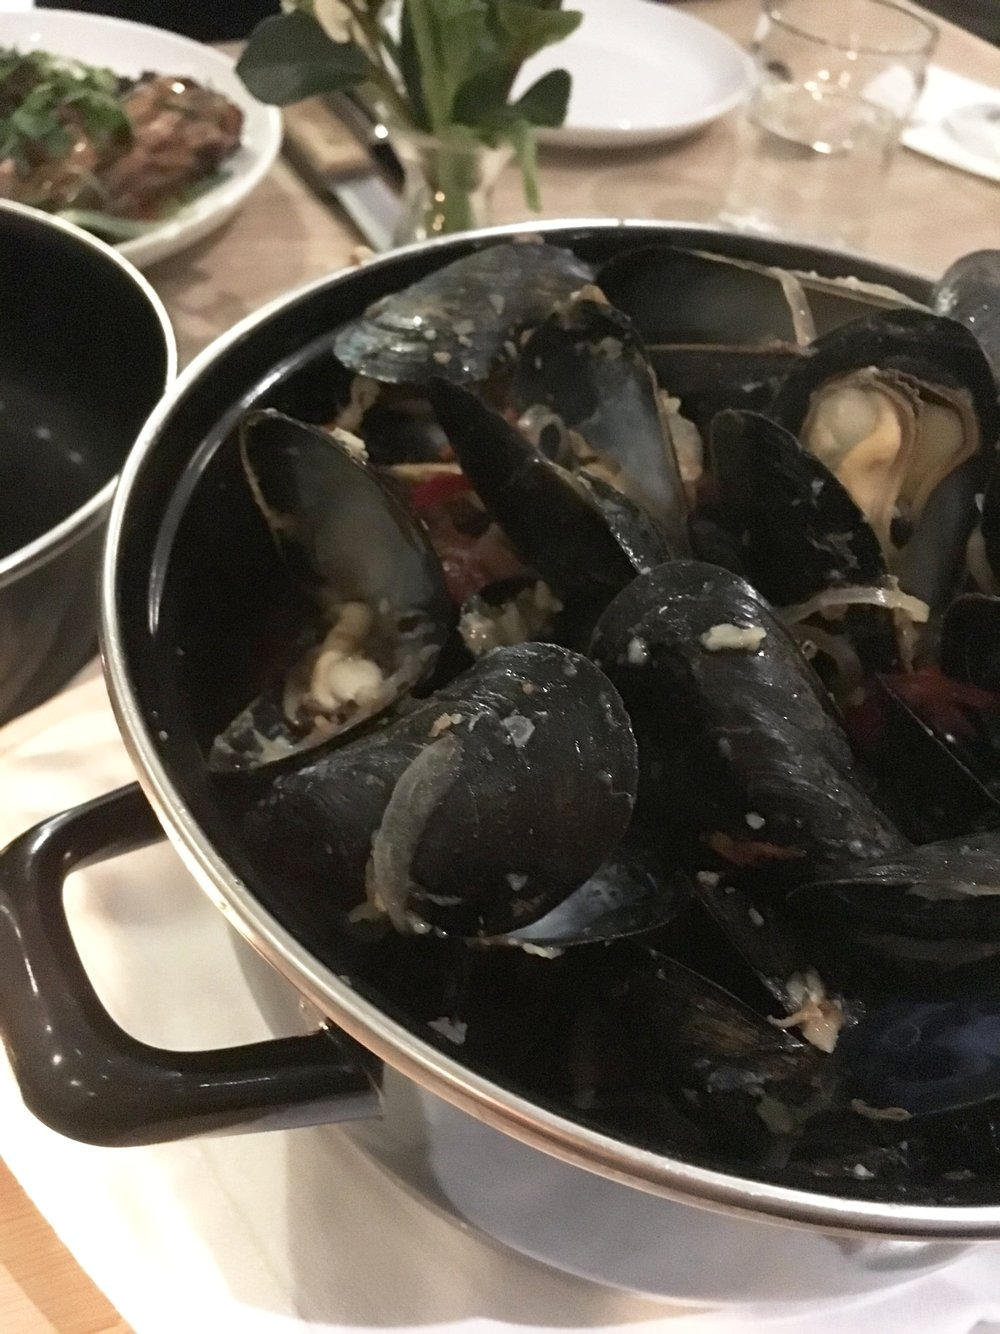 The house mussels are served with killer fries and some spice.